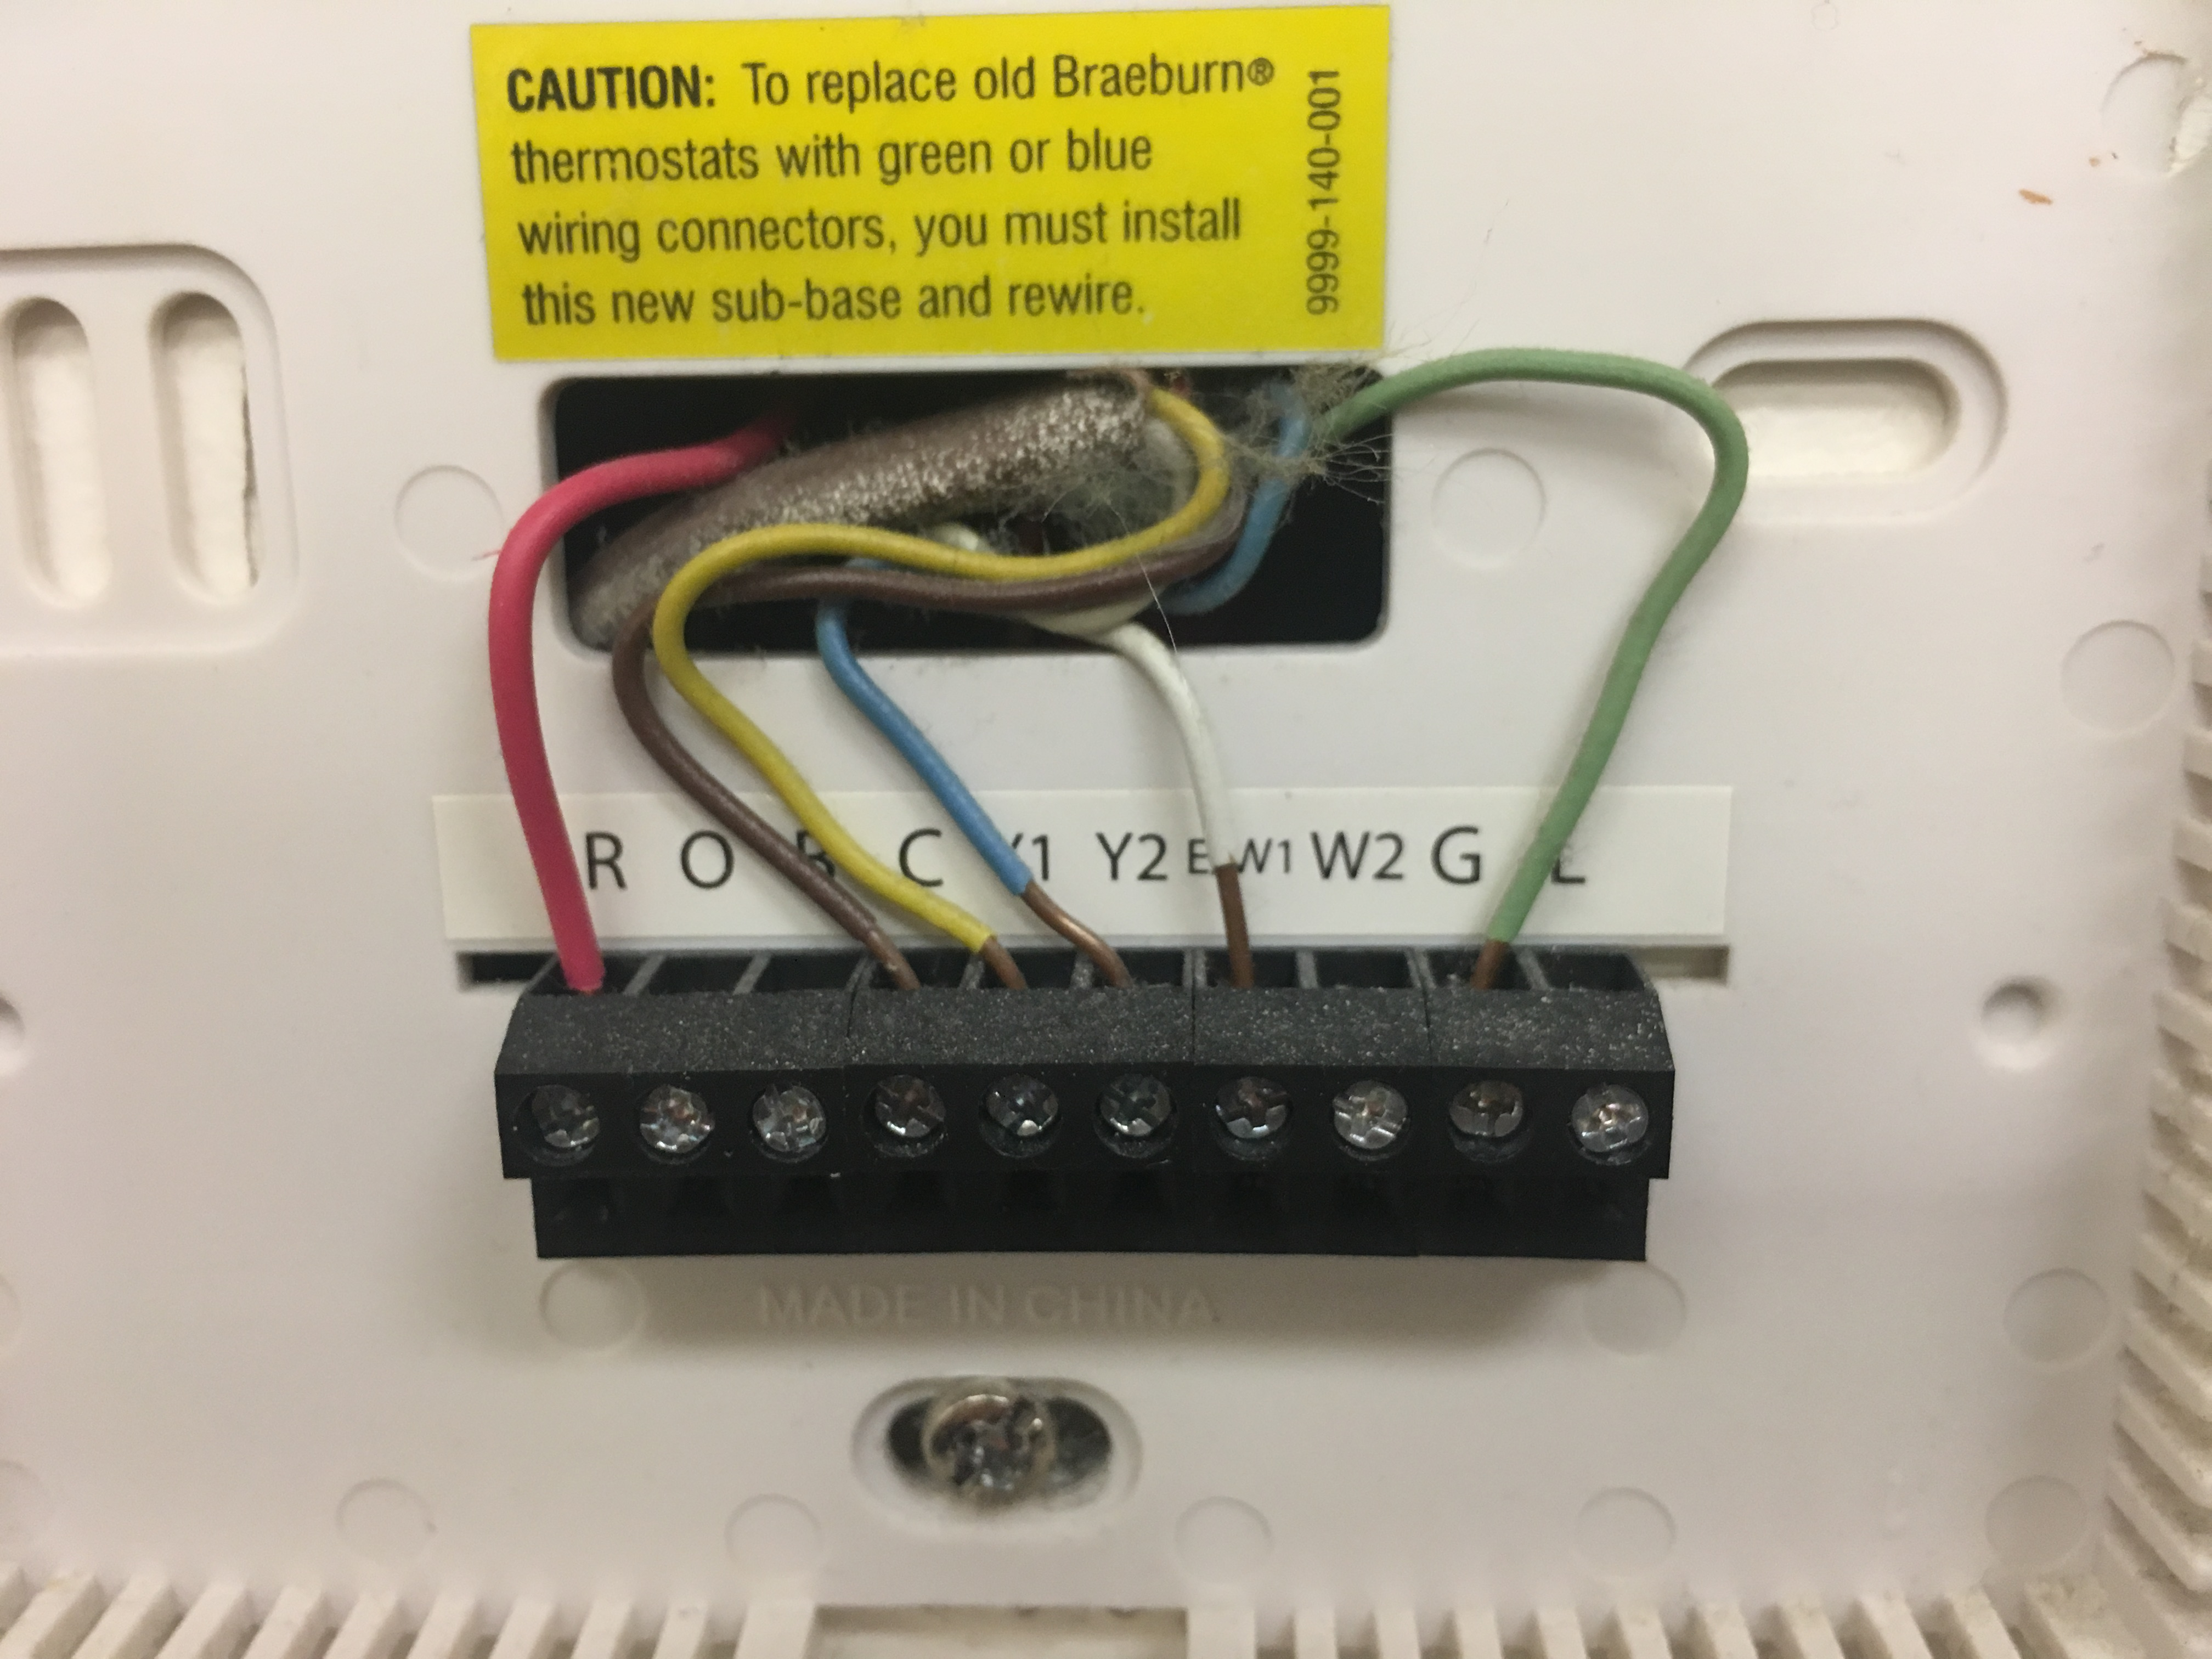 Luxpro Thermostat Wiring Diagram Braeburn Guide And Troubleshooting Of I Am Disconnecting An Old To Install A New Lux Rh Justanswer Com 1020 3220